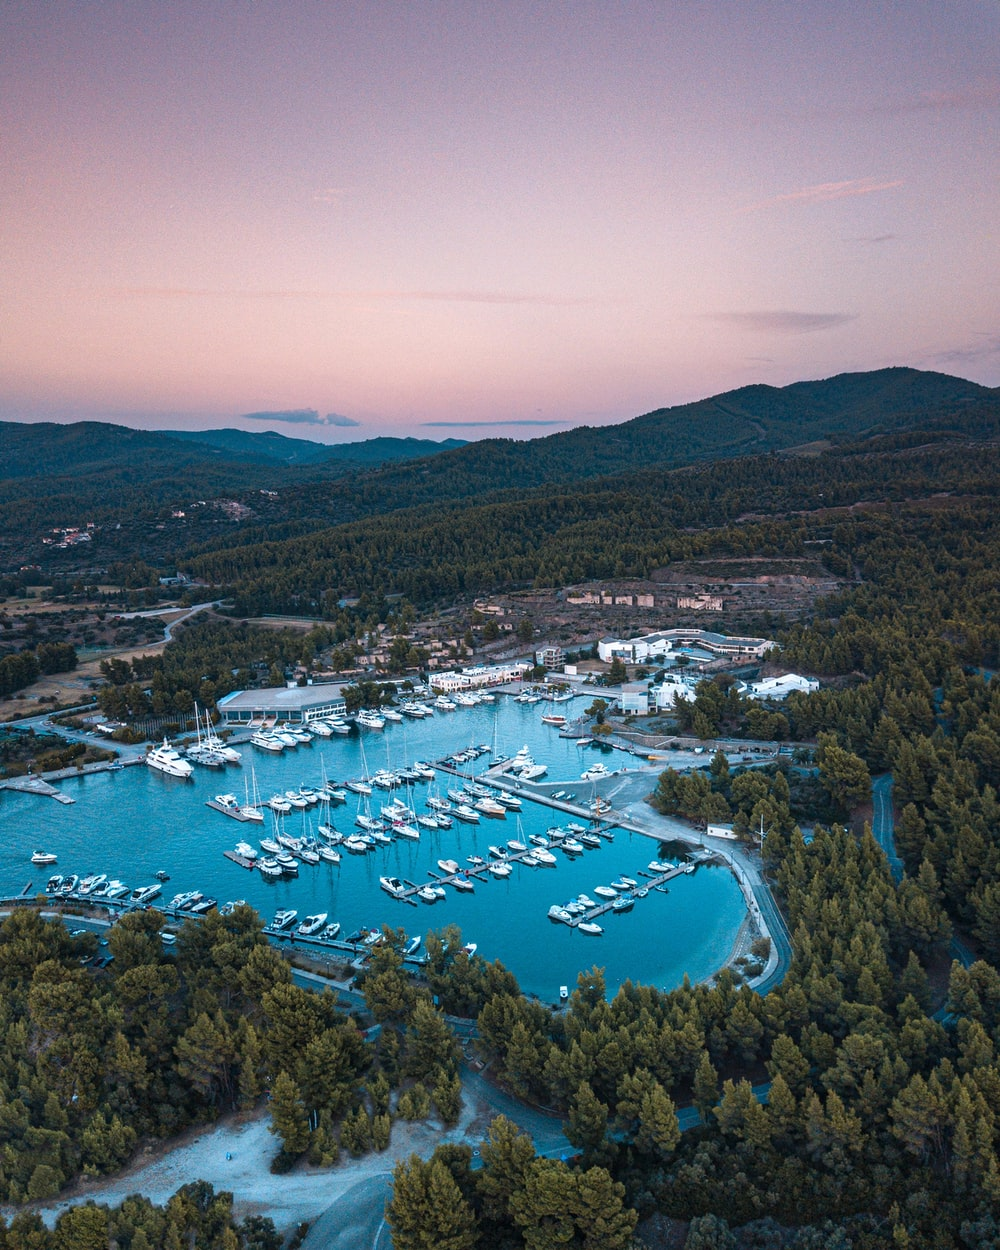 aerial photography of yacht and pine trees during daytime